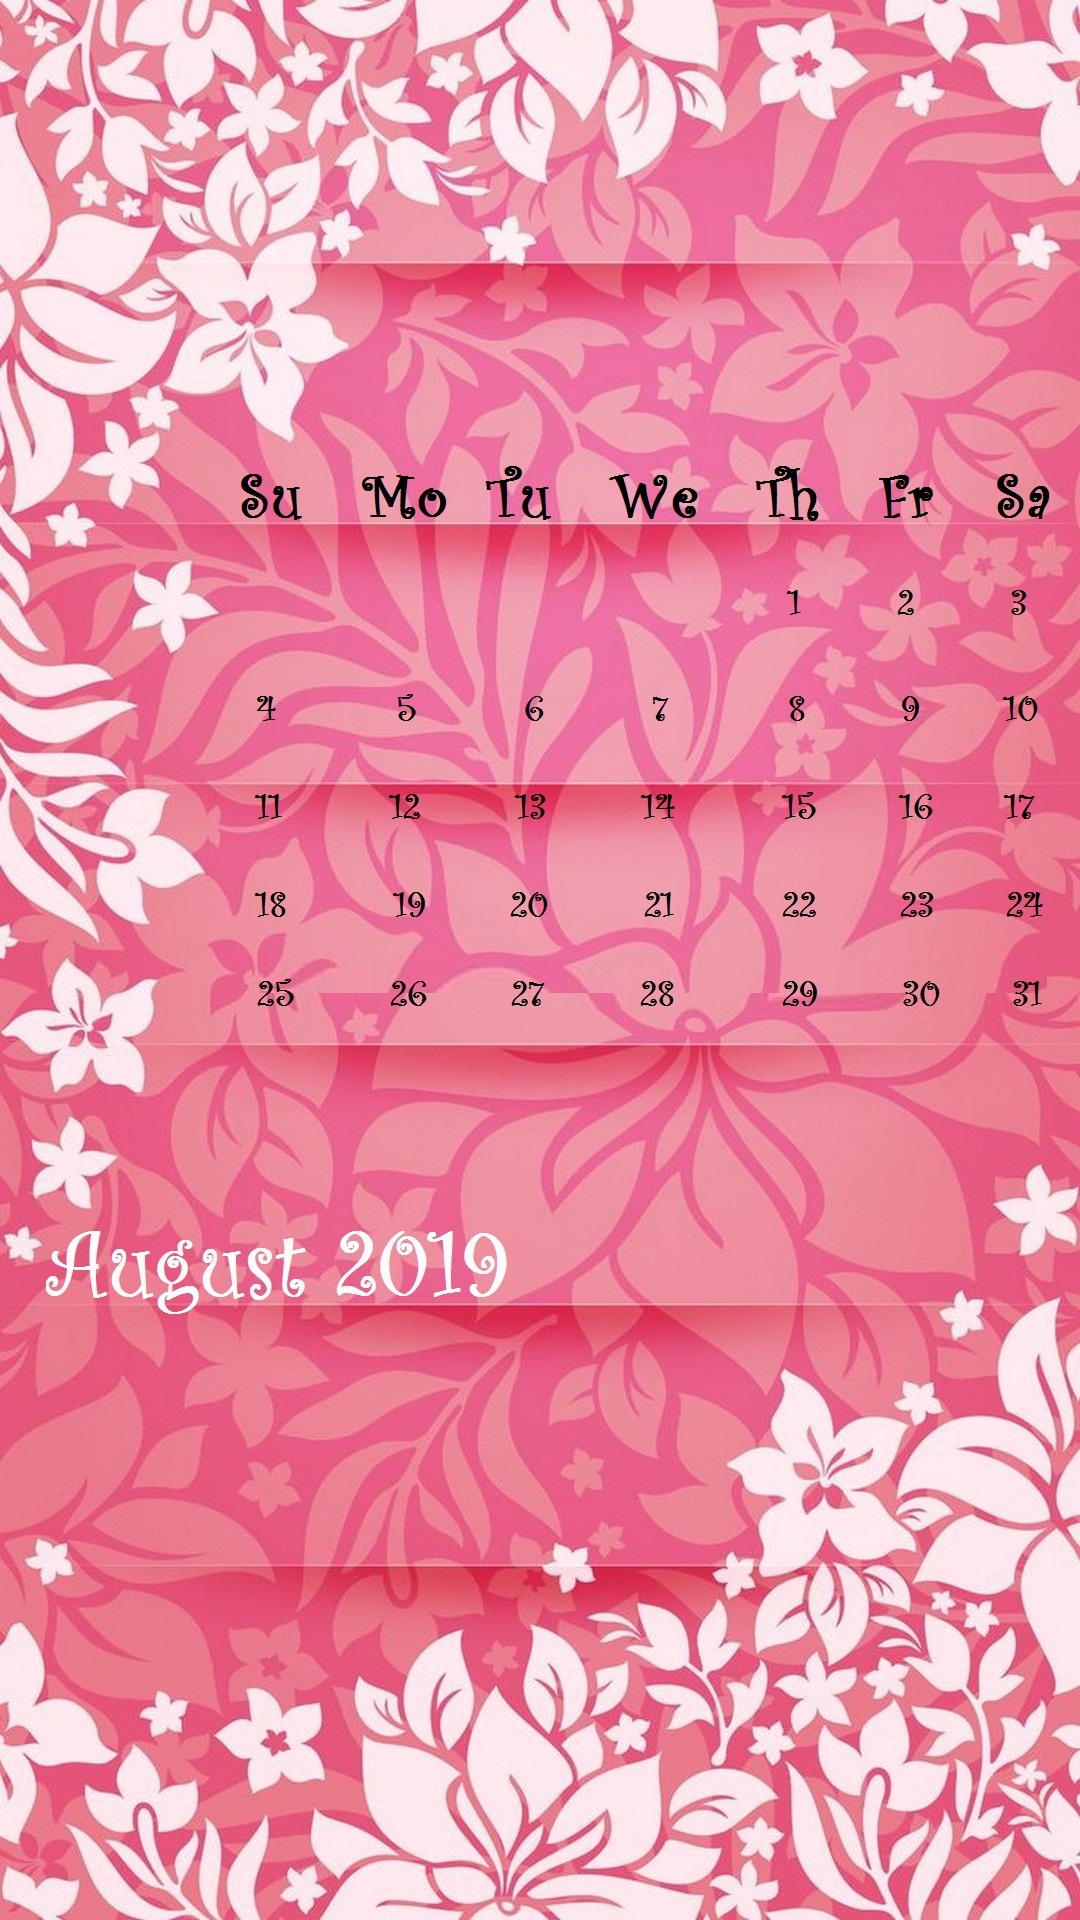 august 2019 iphone calendar wallpaper calendar 2019::August 2019 iPhone Calendar Wallpaper